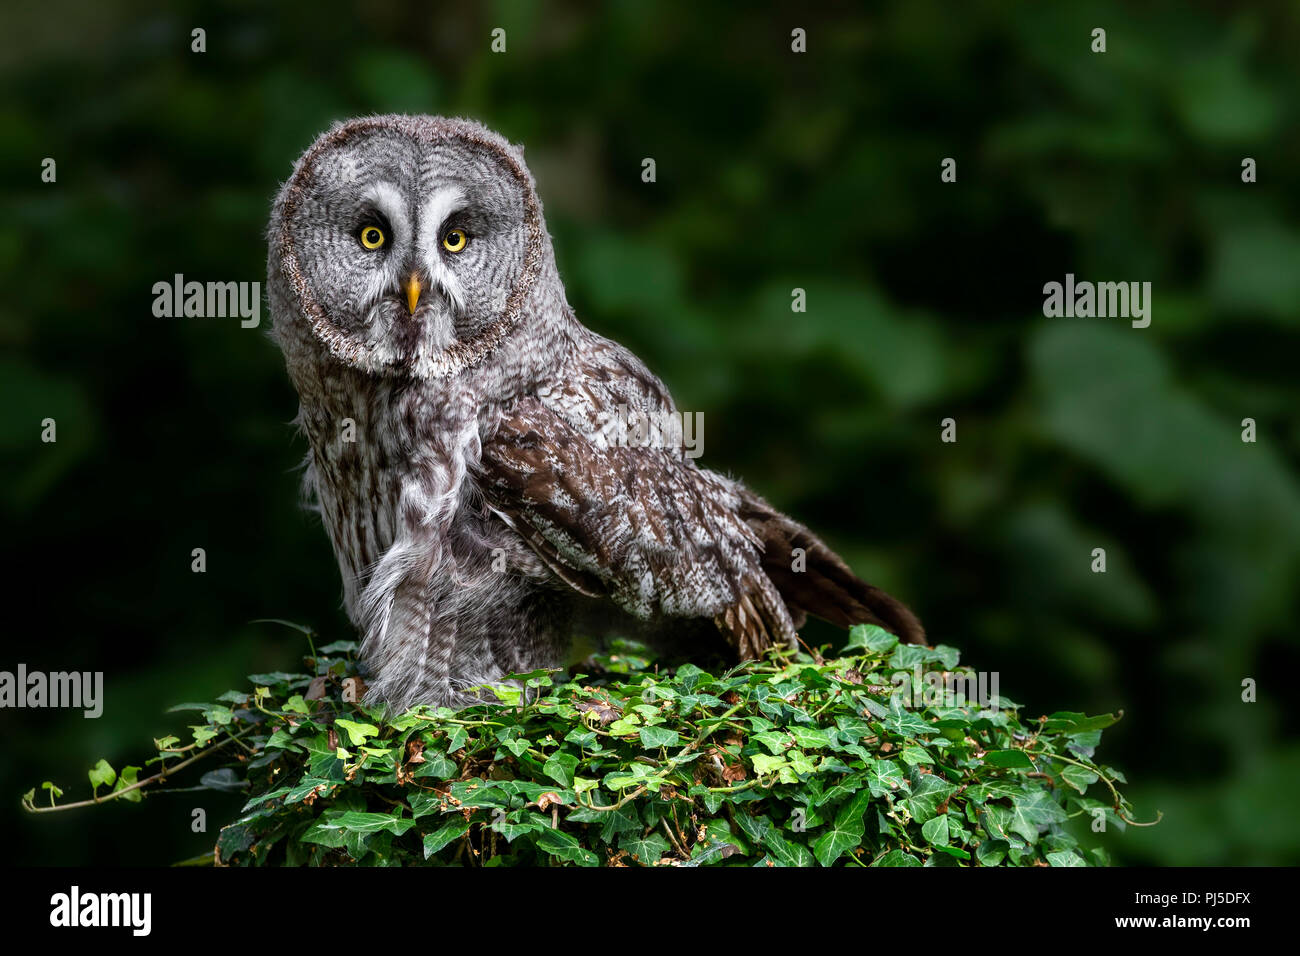 Portrait of a Great Grey Owl - Stock Image